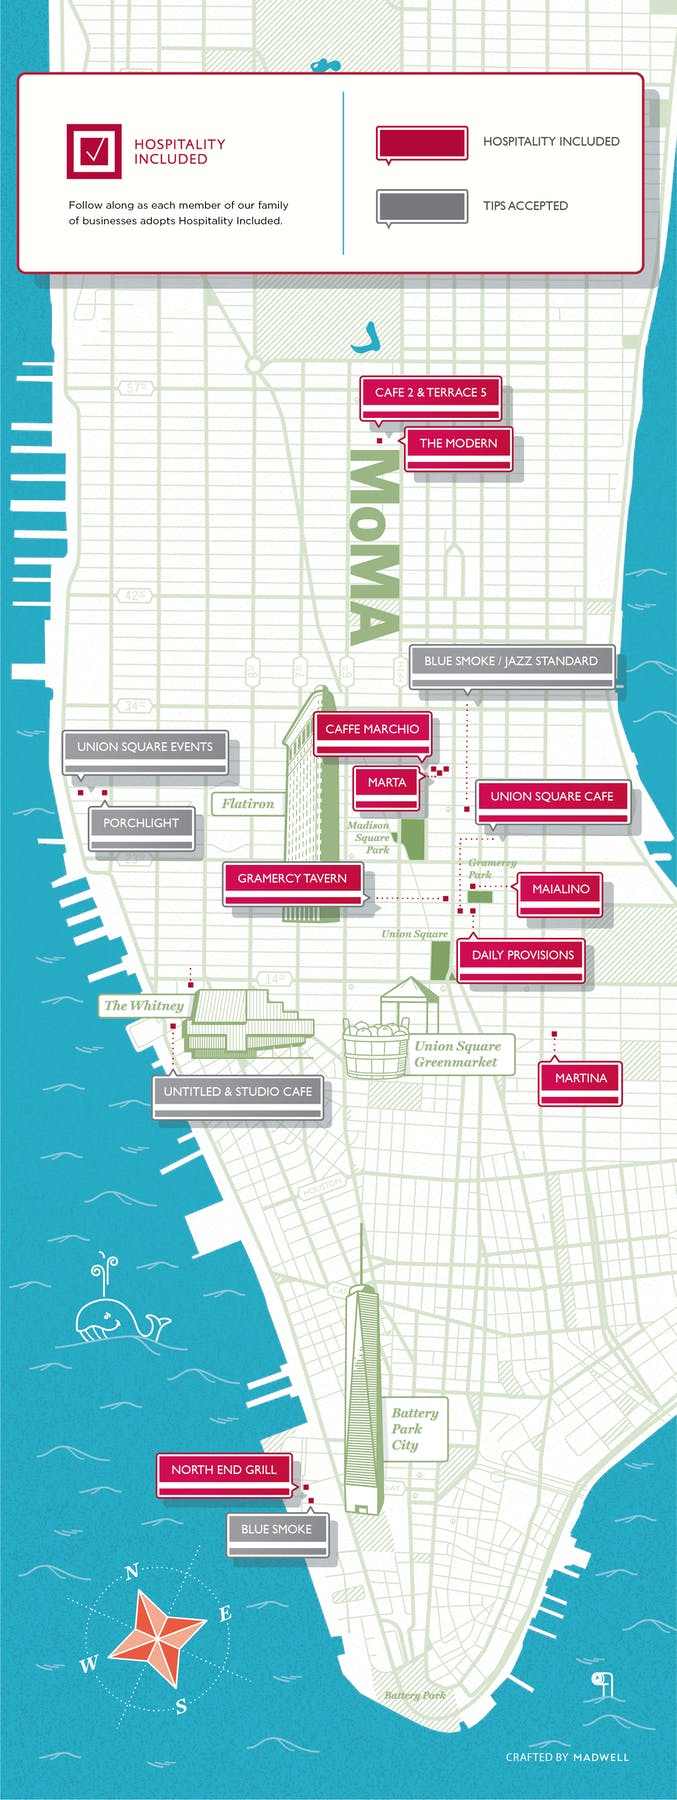 Map of the restaurants that have adopted Hospitality Included: currently The Modern, Maialino, North End Grill, Marta, Gramercy Tavern, Union Square Cafe, and Daily Provisions.